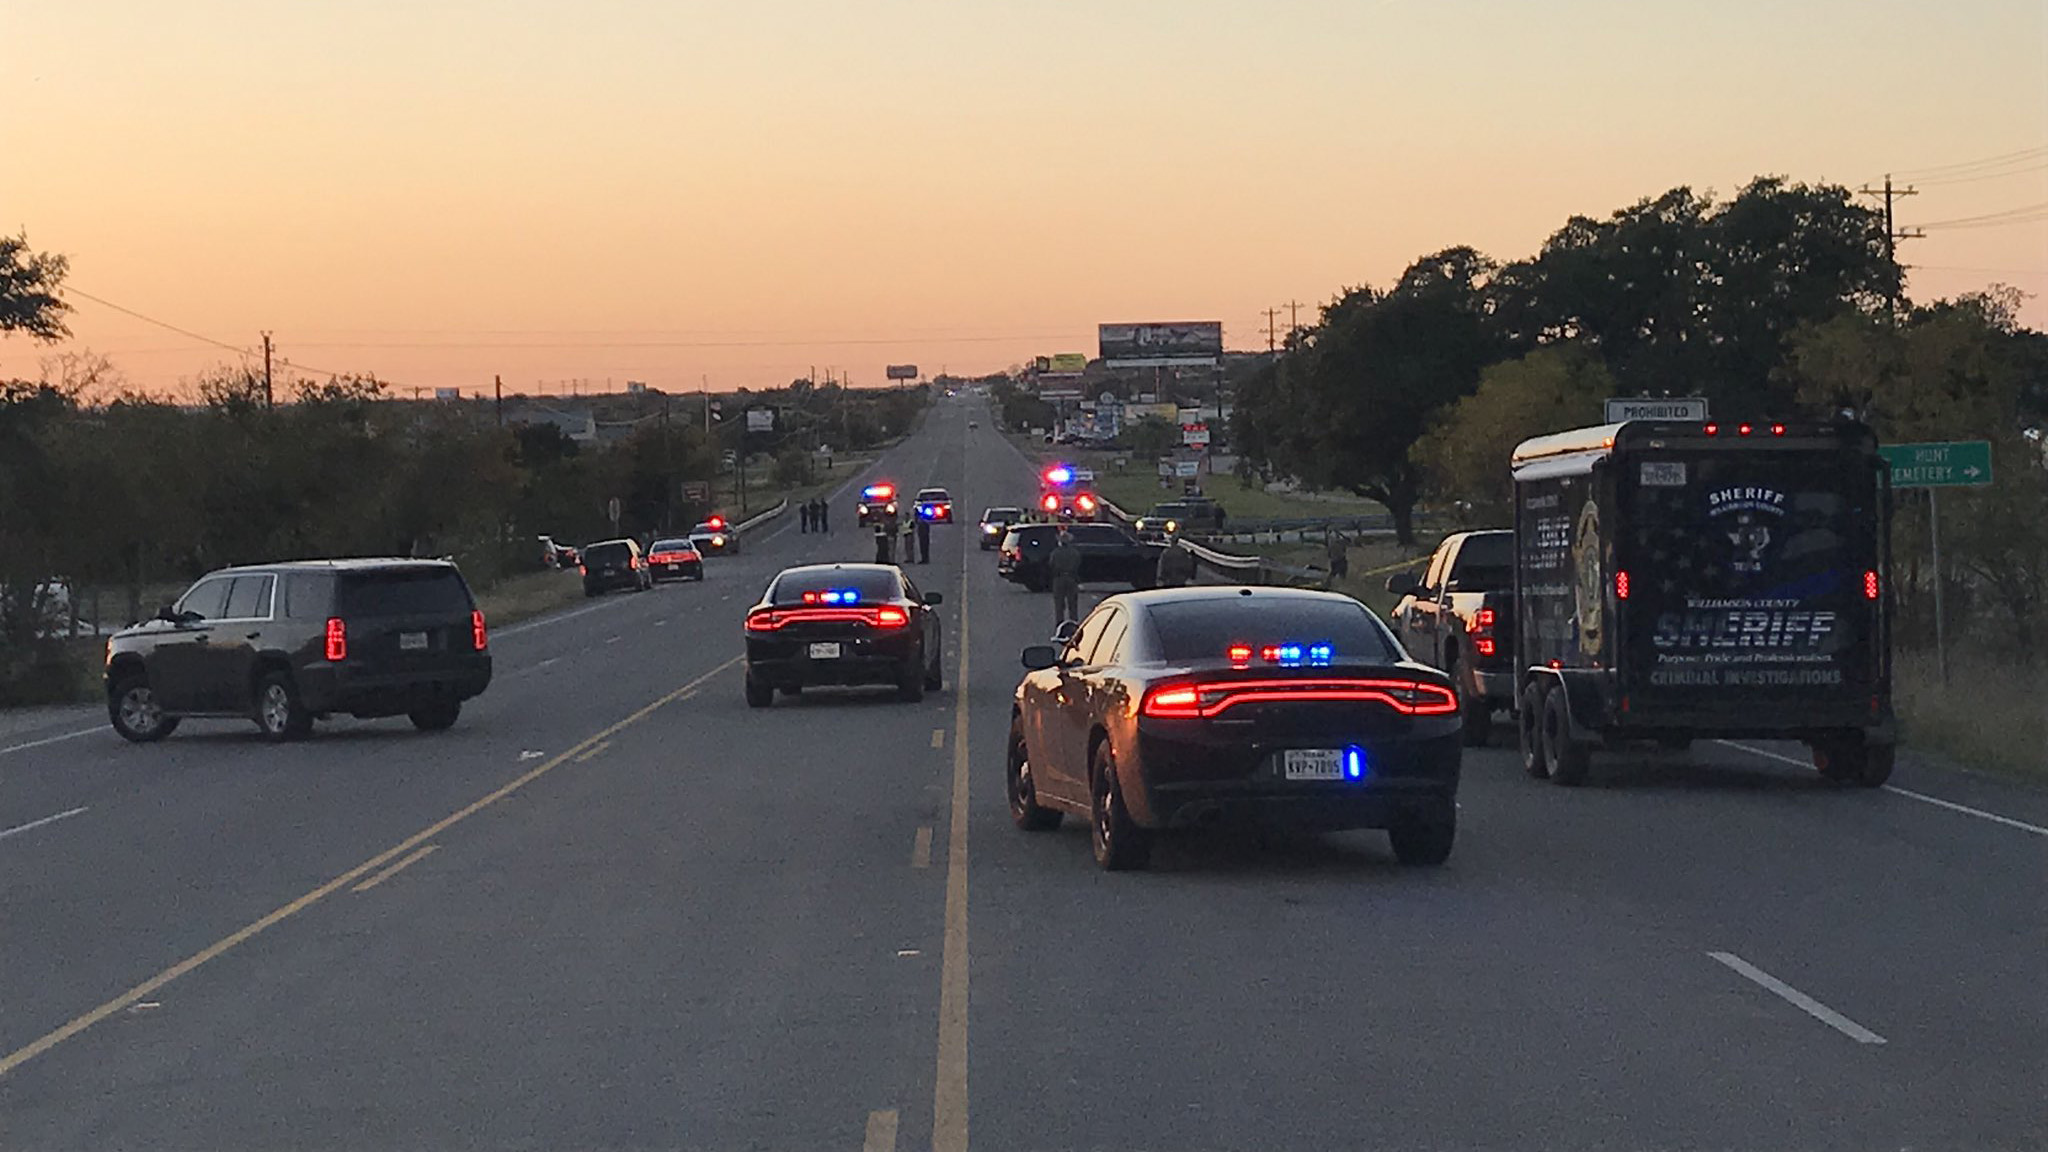 The scene of a rollover crash that killed on person on Oct. 30, 2018 at SH 29 and County Road 260